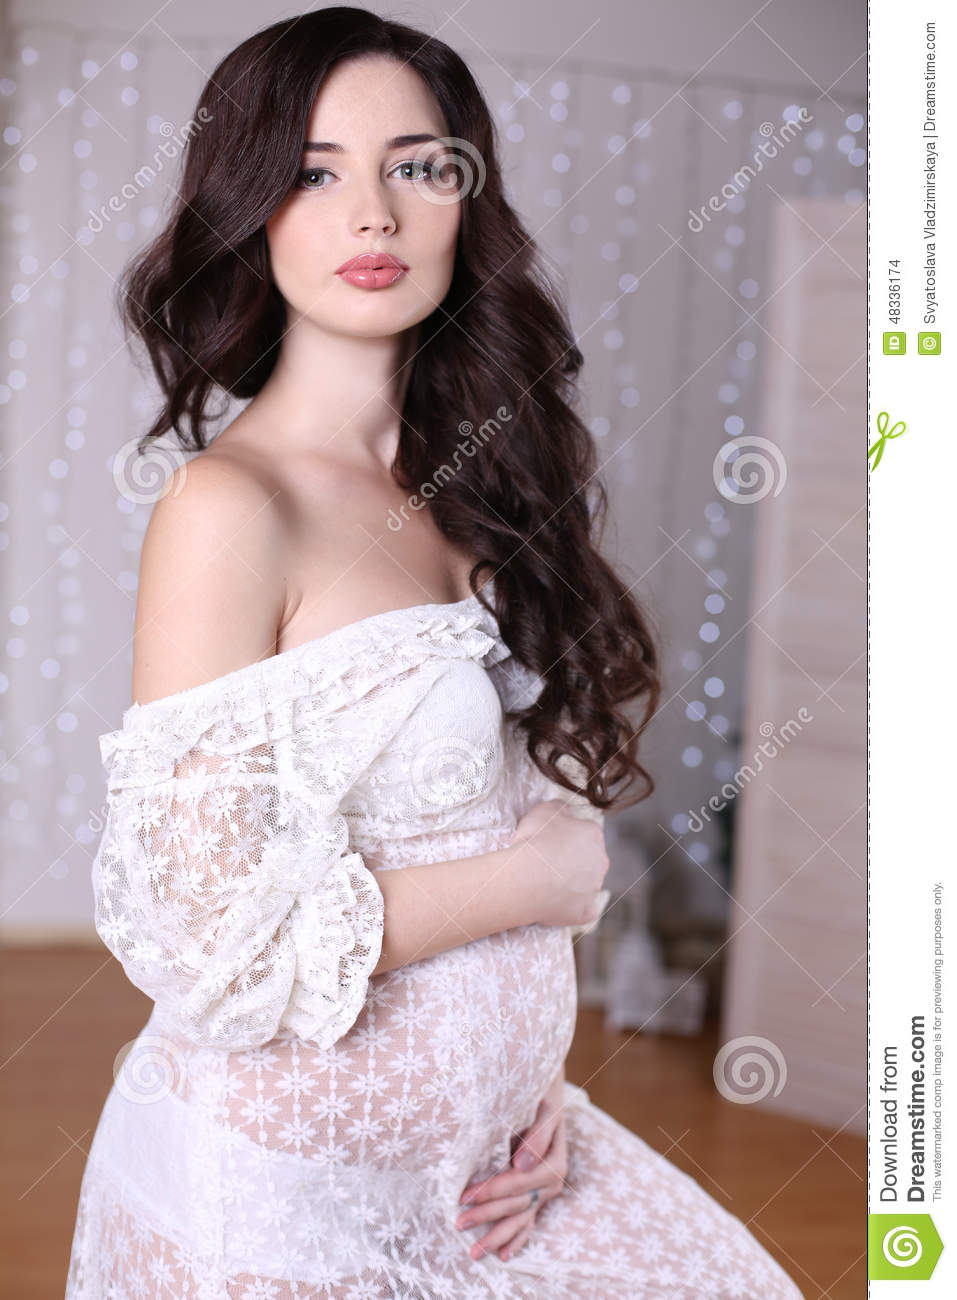 beautiful pregnant woman with long dark hair wearing lace